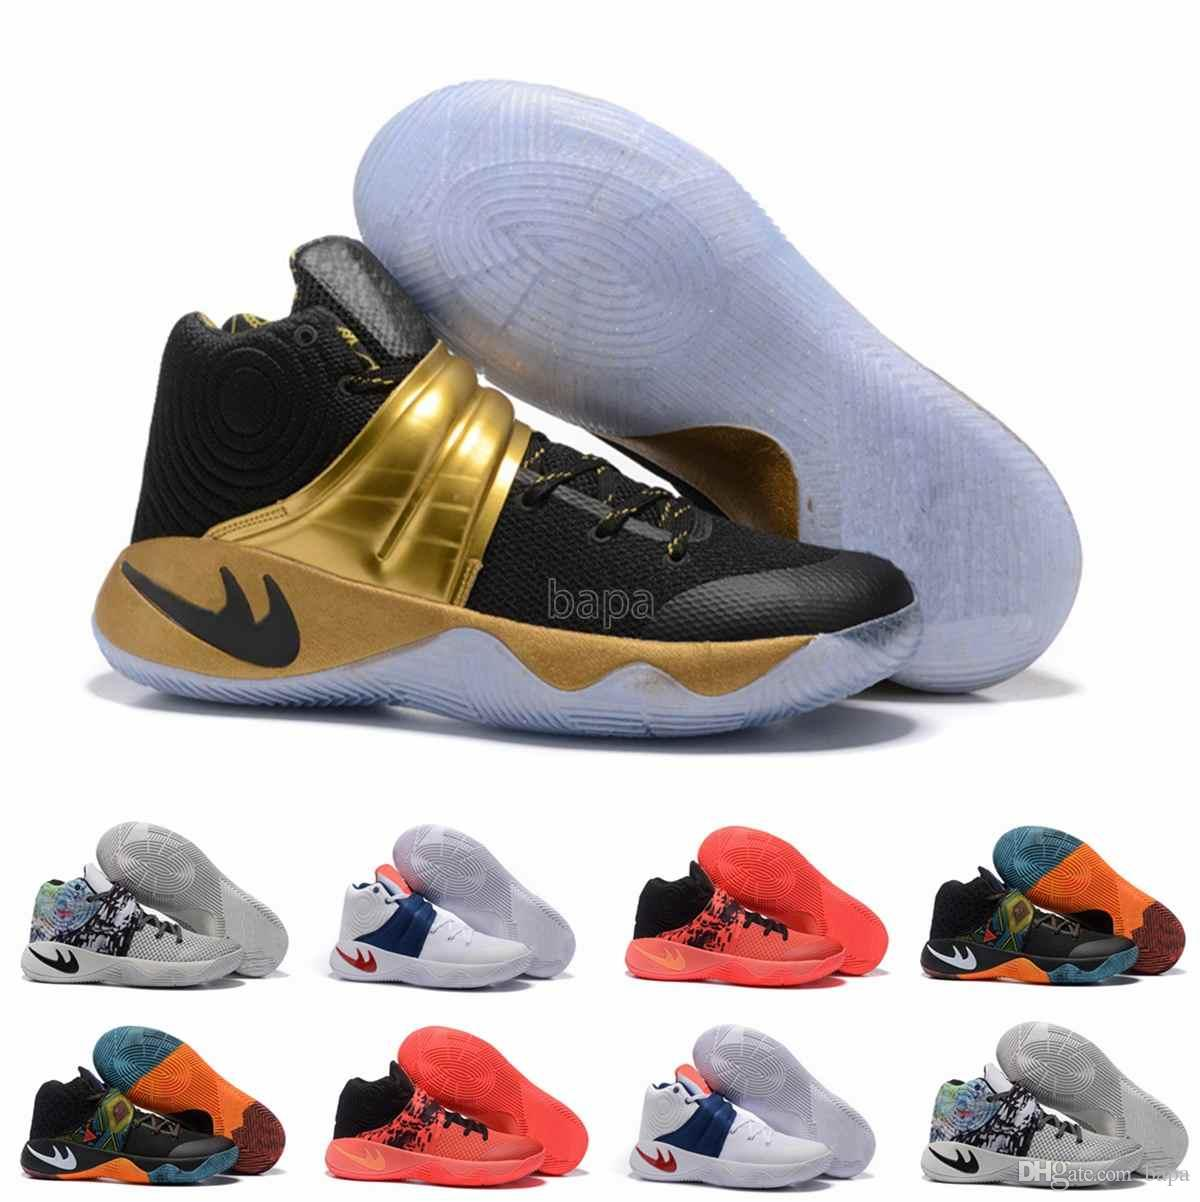 Hibbett Sports Basketball Shoes Shoes Collections